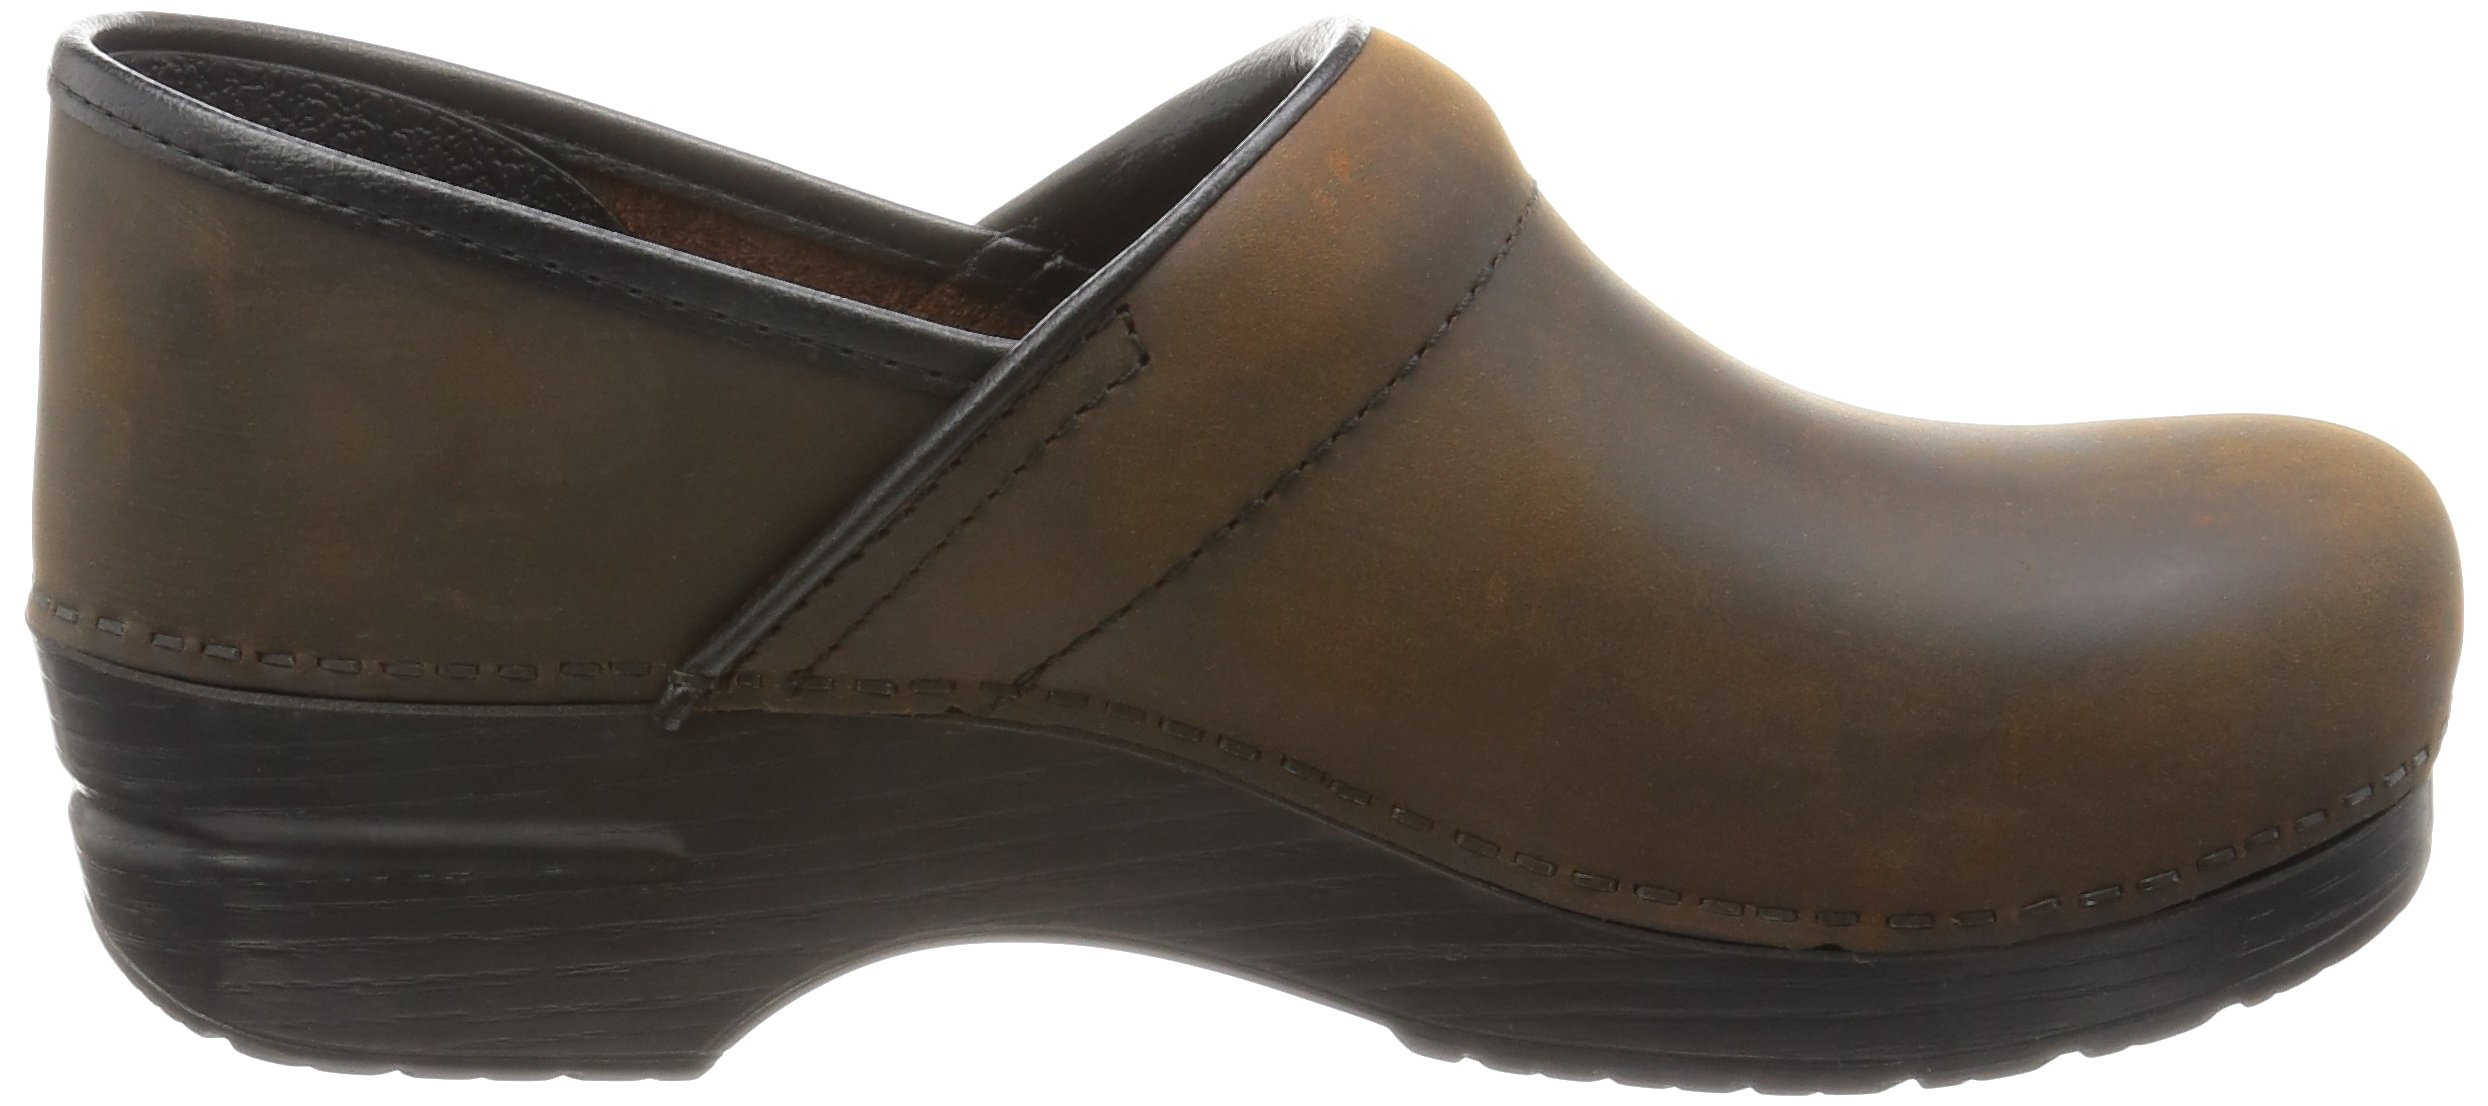 Dansko Women's Professional Oiled Leather Clog,Antique Brown/Black,35 EU / 4.5-5 B(M) US by Dansko (Image #7)